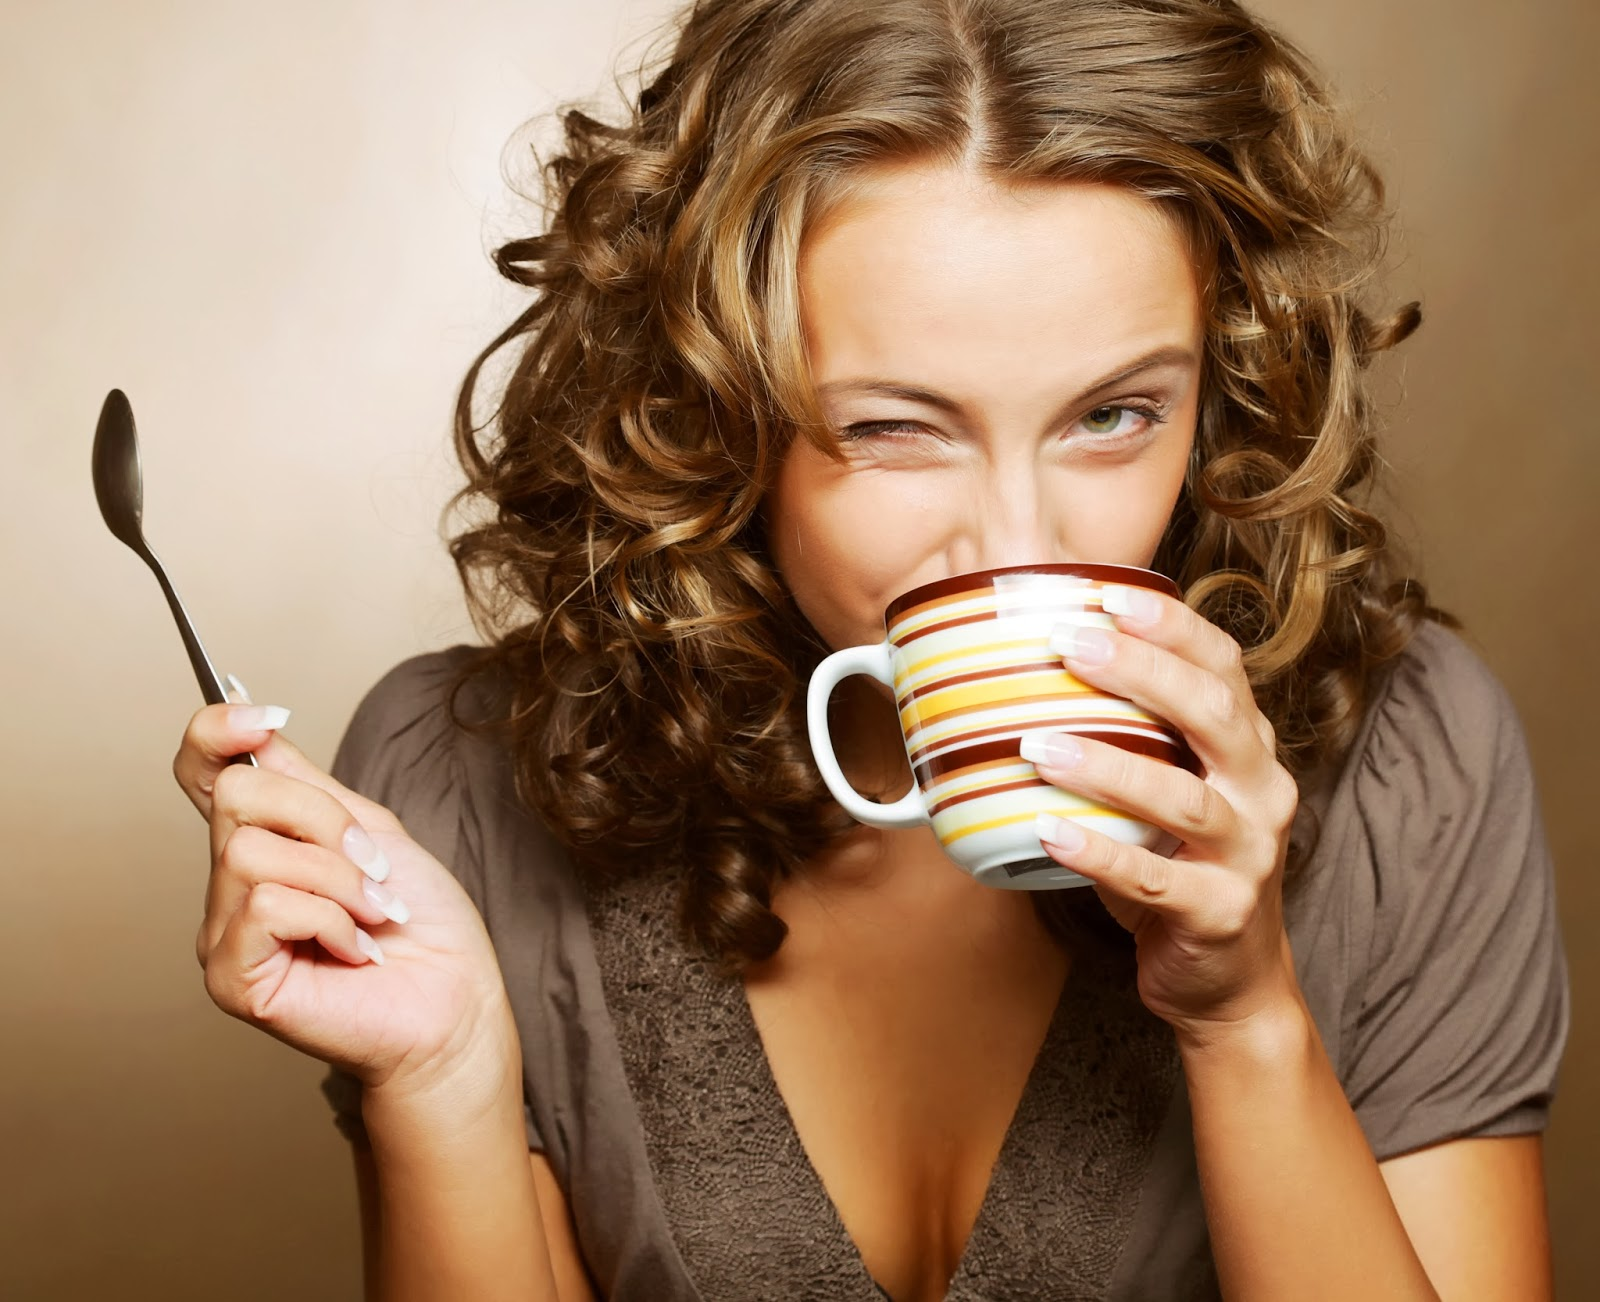 Coffee may help improve memory, in addition to a wide variety of other health benefits.